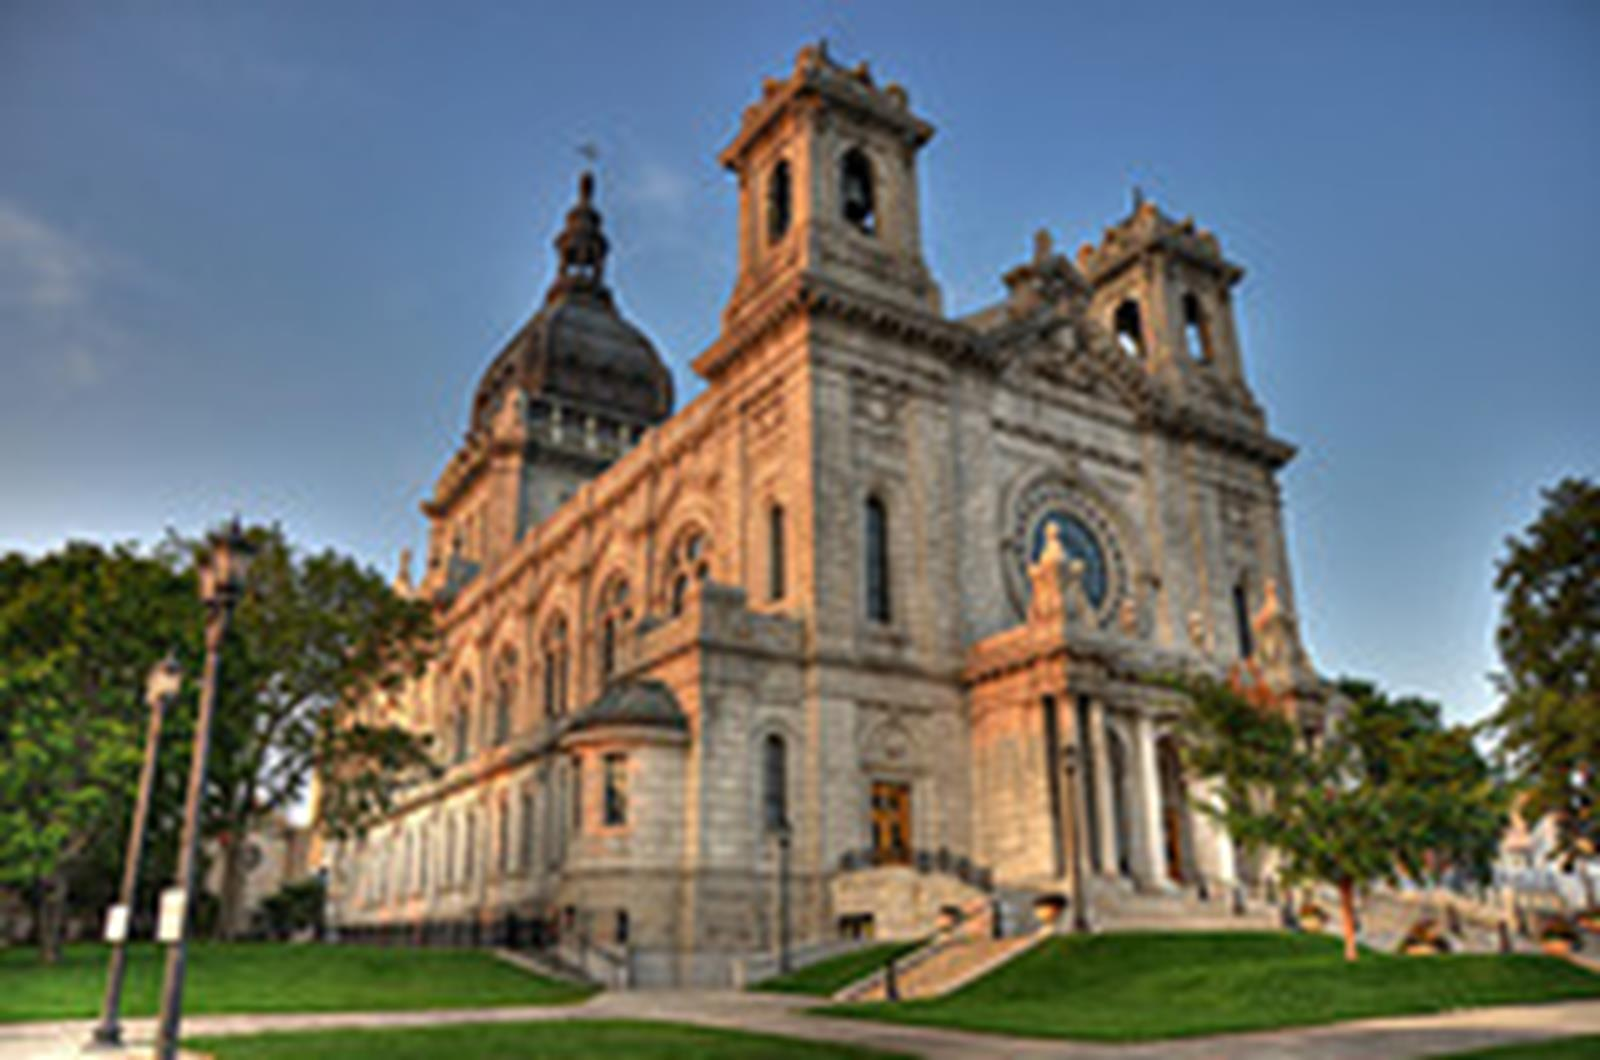 Basilica of Saint Mary from Jason's Travel Photography